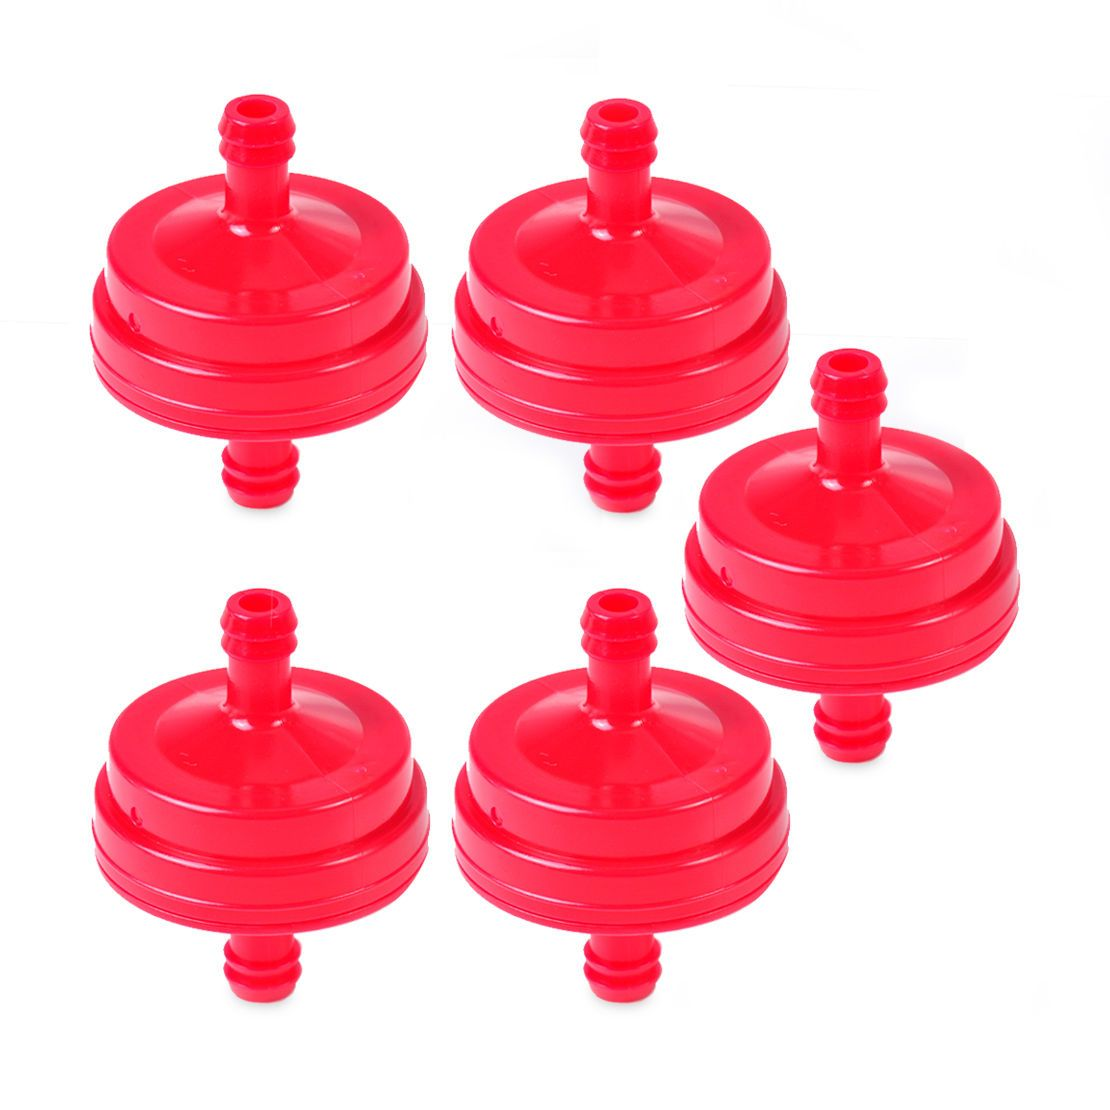 2 5 5x 1 4 red inline fuel filter replacement 298090 fit for briggs stratton ebay home garden [ 1110 x 1110 Pixel ]